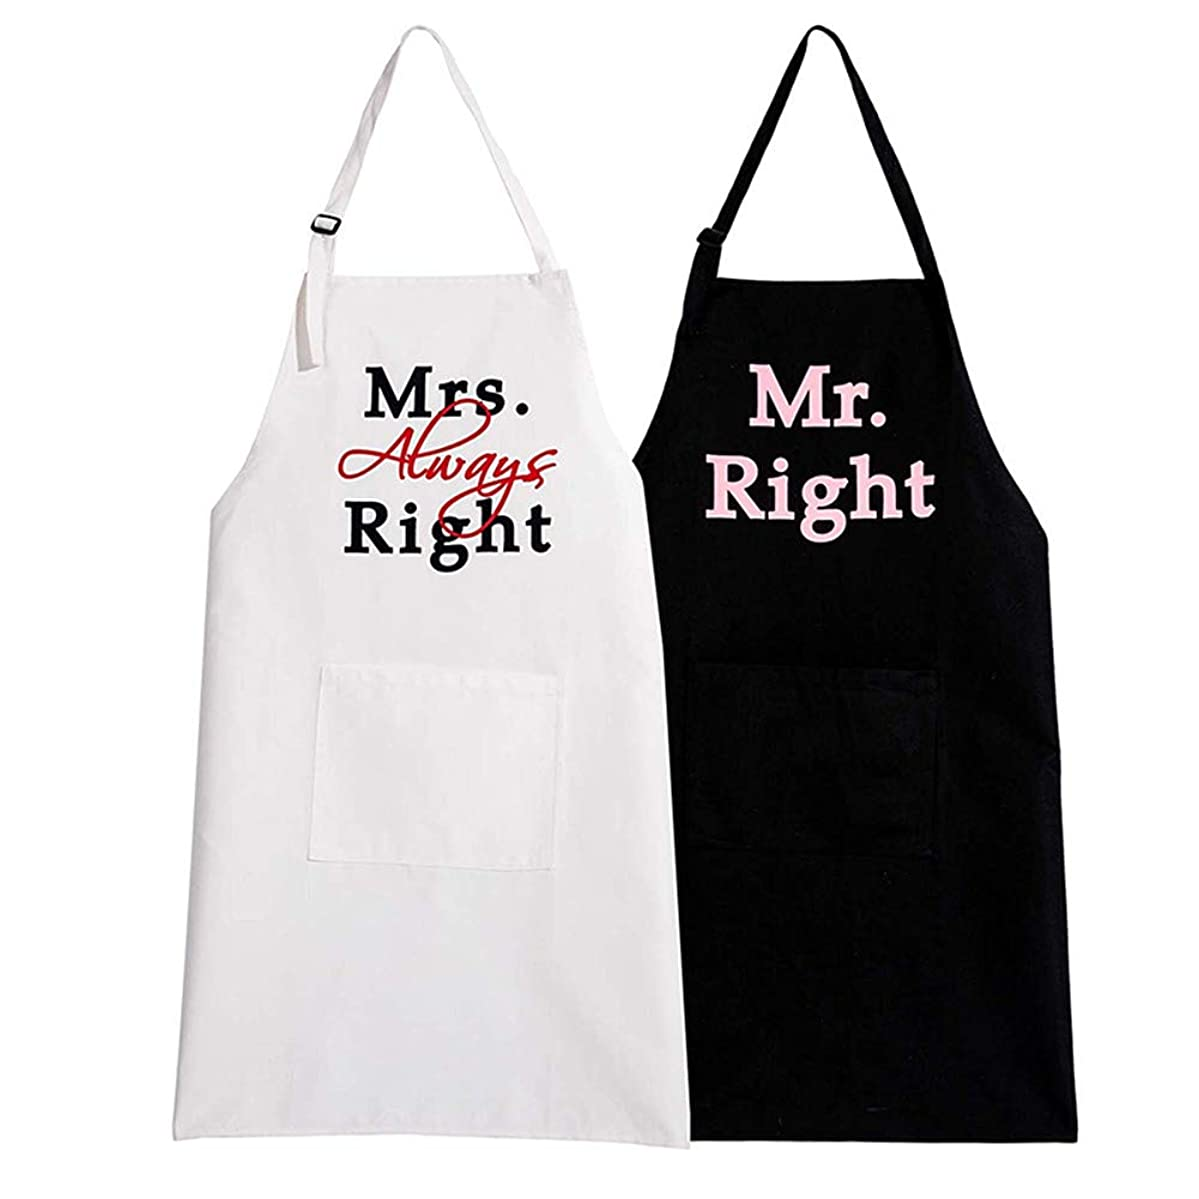 FLYMEI Wedding Apron Bridal Shower Gifts, Cooking Apron for Women/Engagement Gift/Anniversary, Kitchen Apron Set, Cotton Couple Cooking Aprons with Pockets